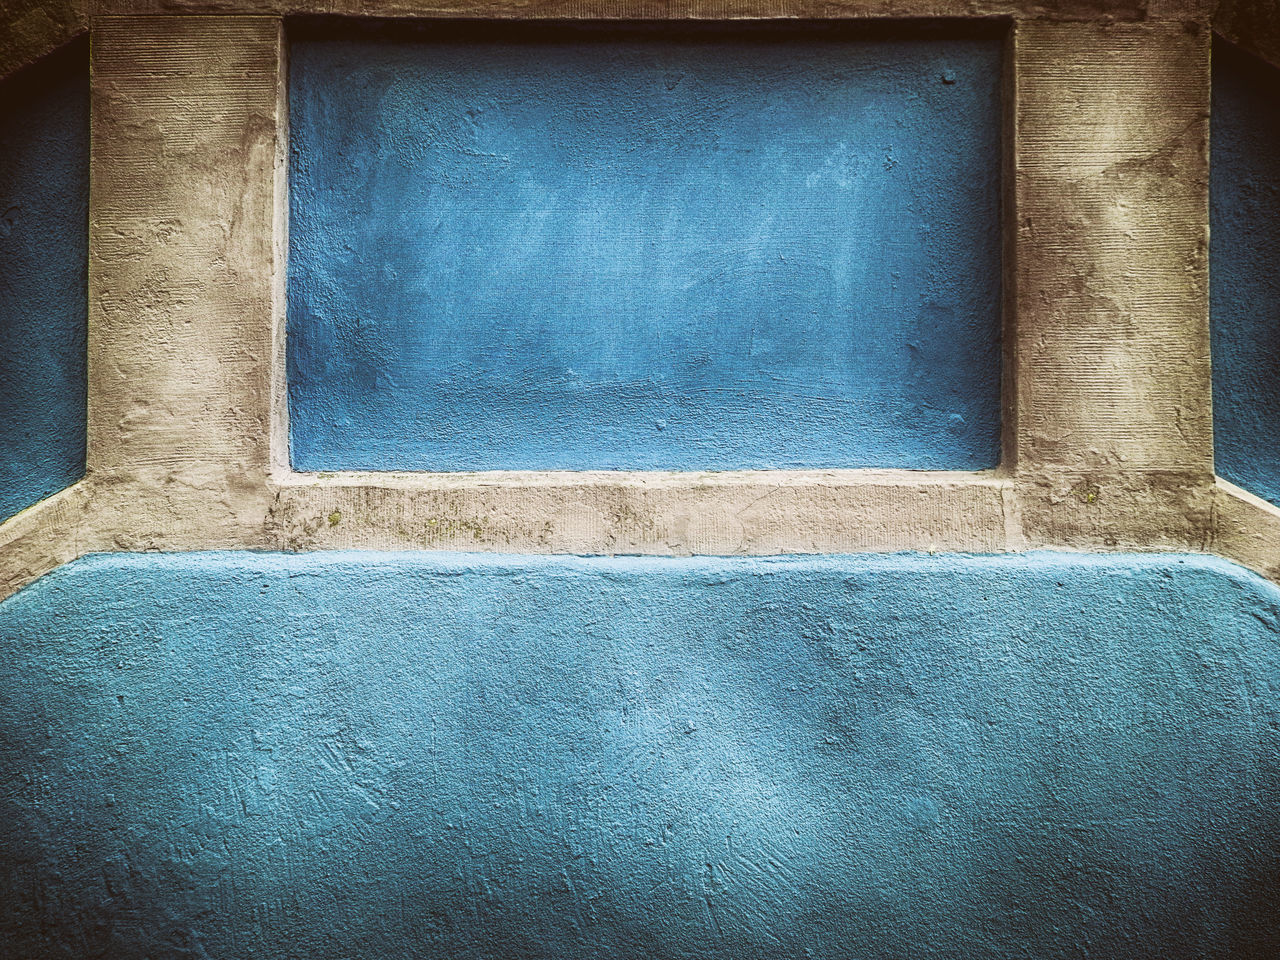 FULL FRAME SHOT OF BLUE WALL WITH WINDOW